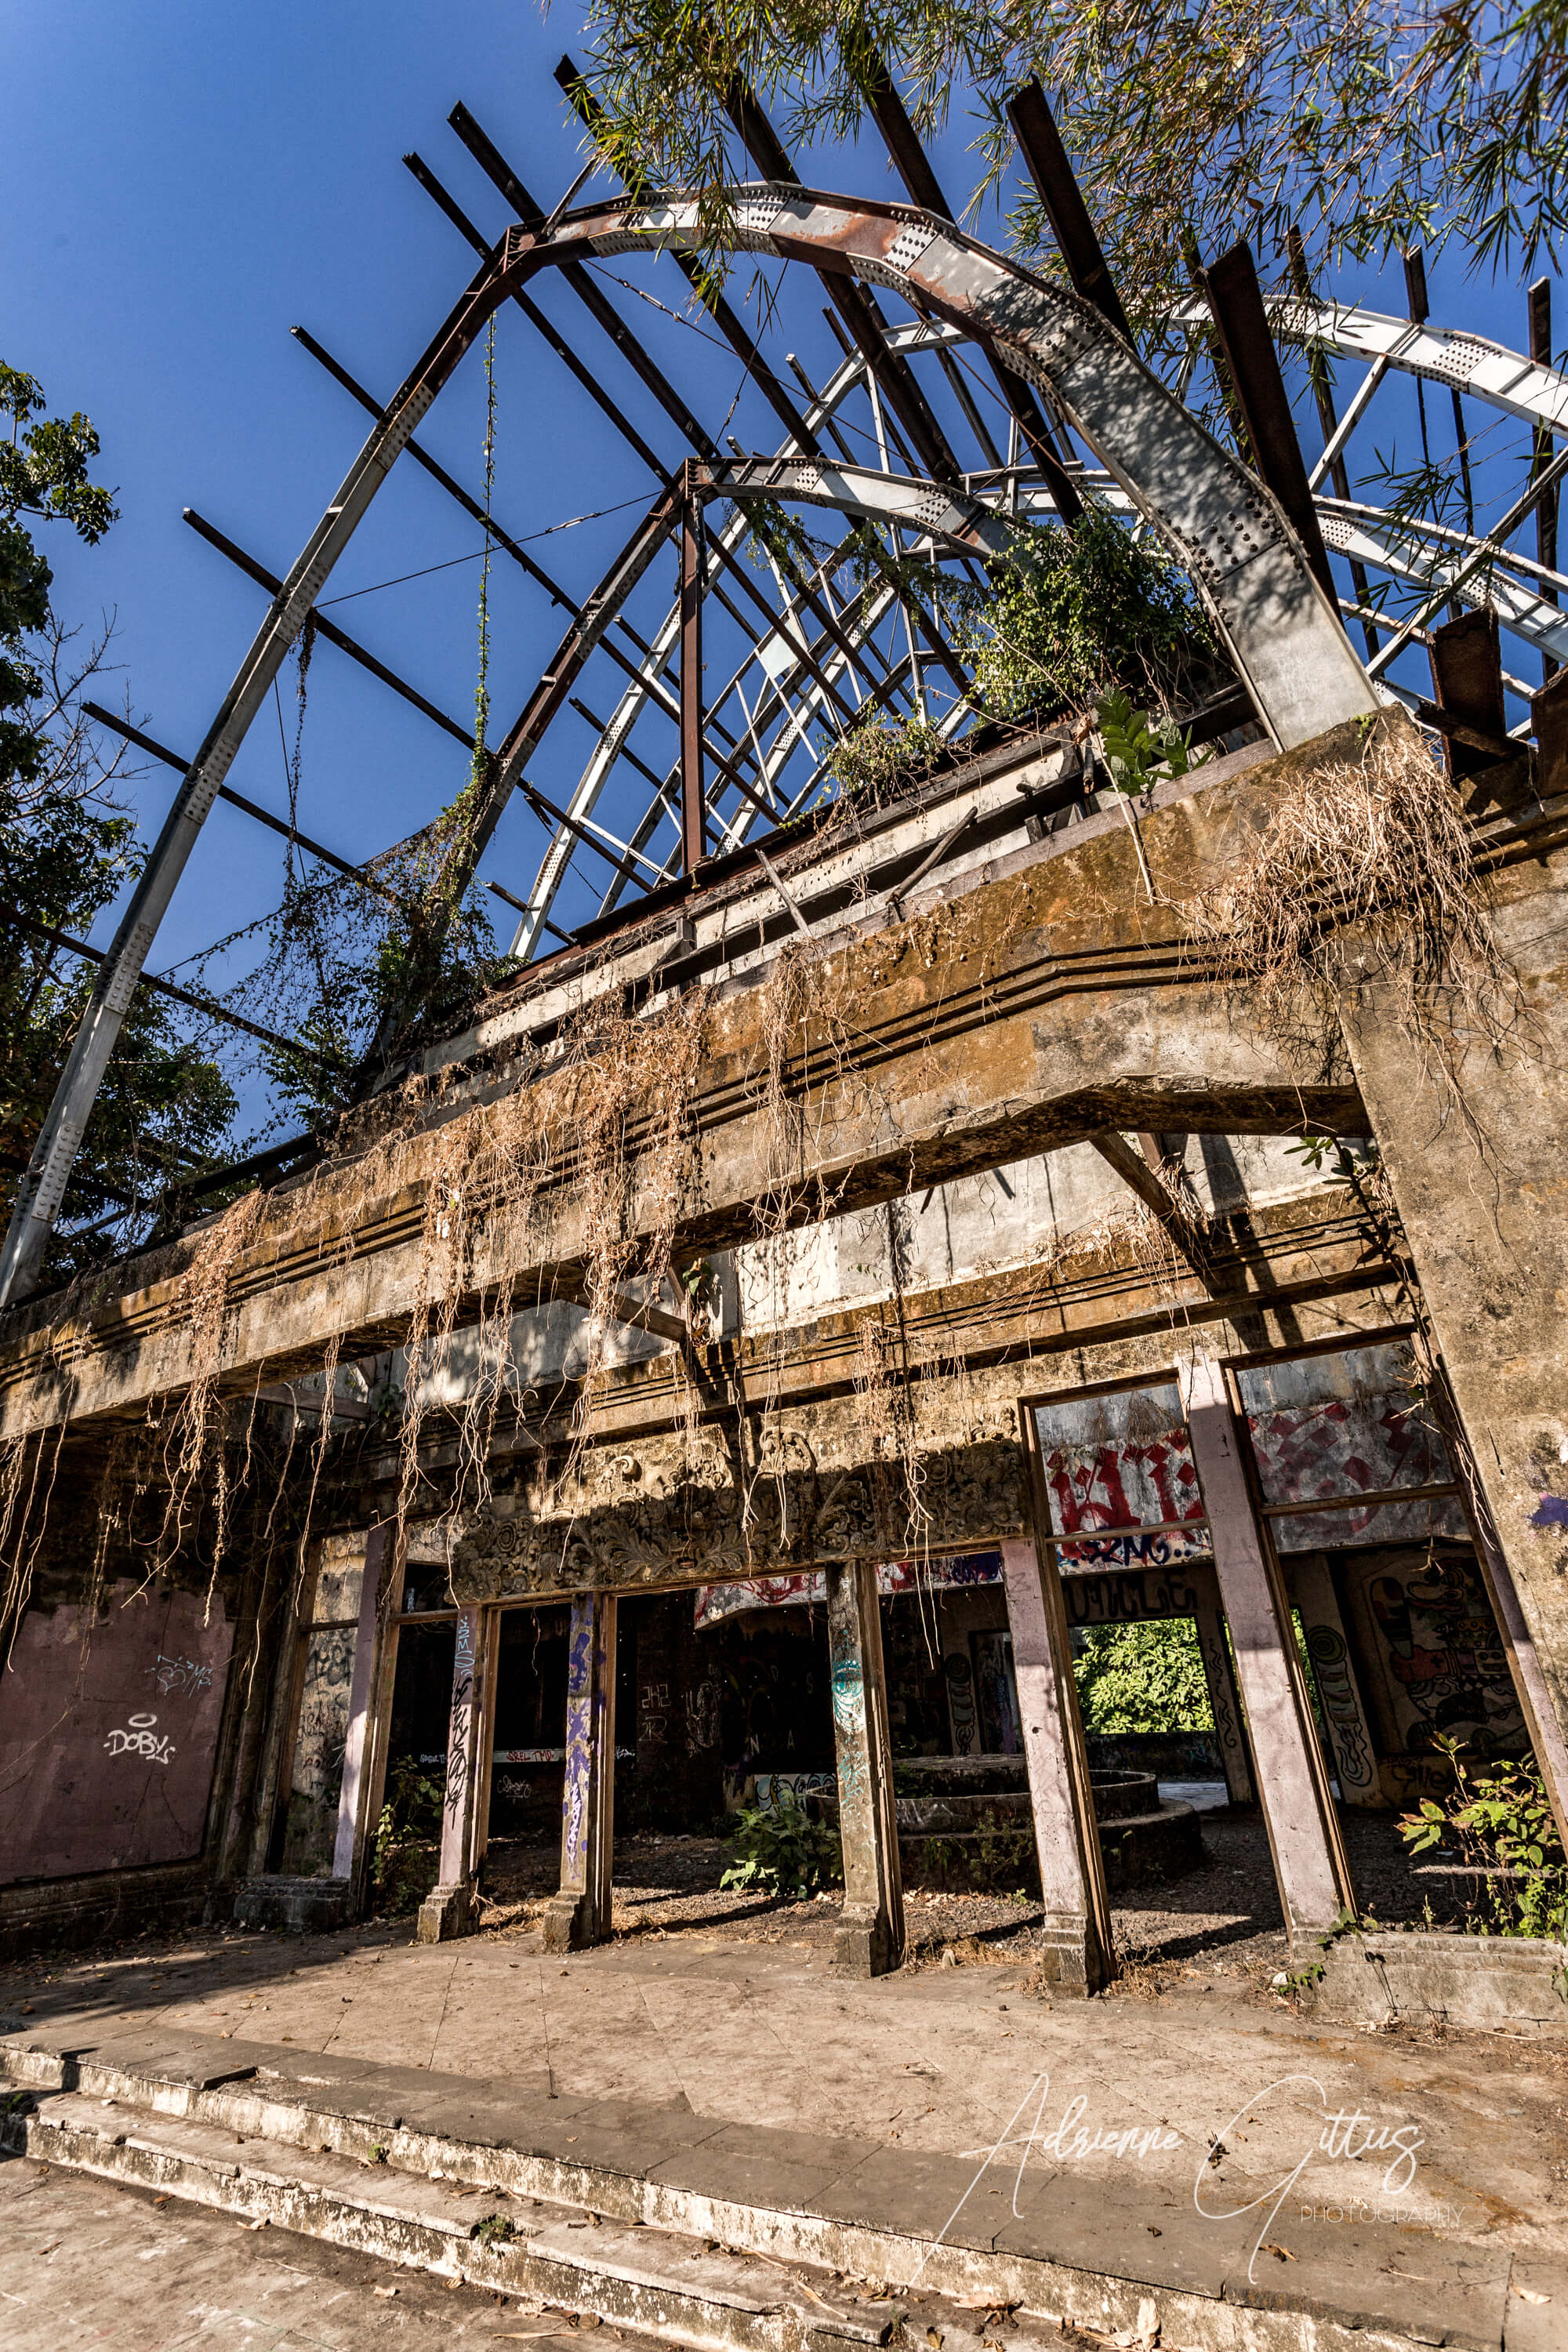 Taman Festival Abandoned Theme Park, Bali, overgrown building, jungle, reclaimed by nature